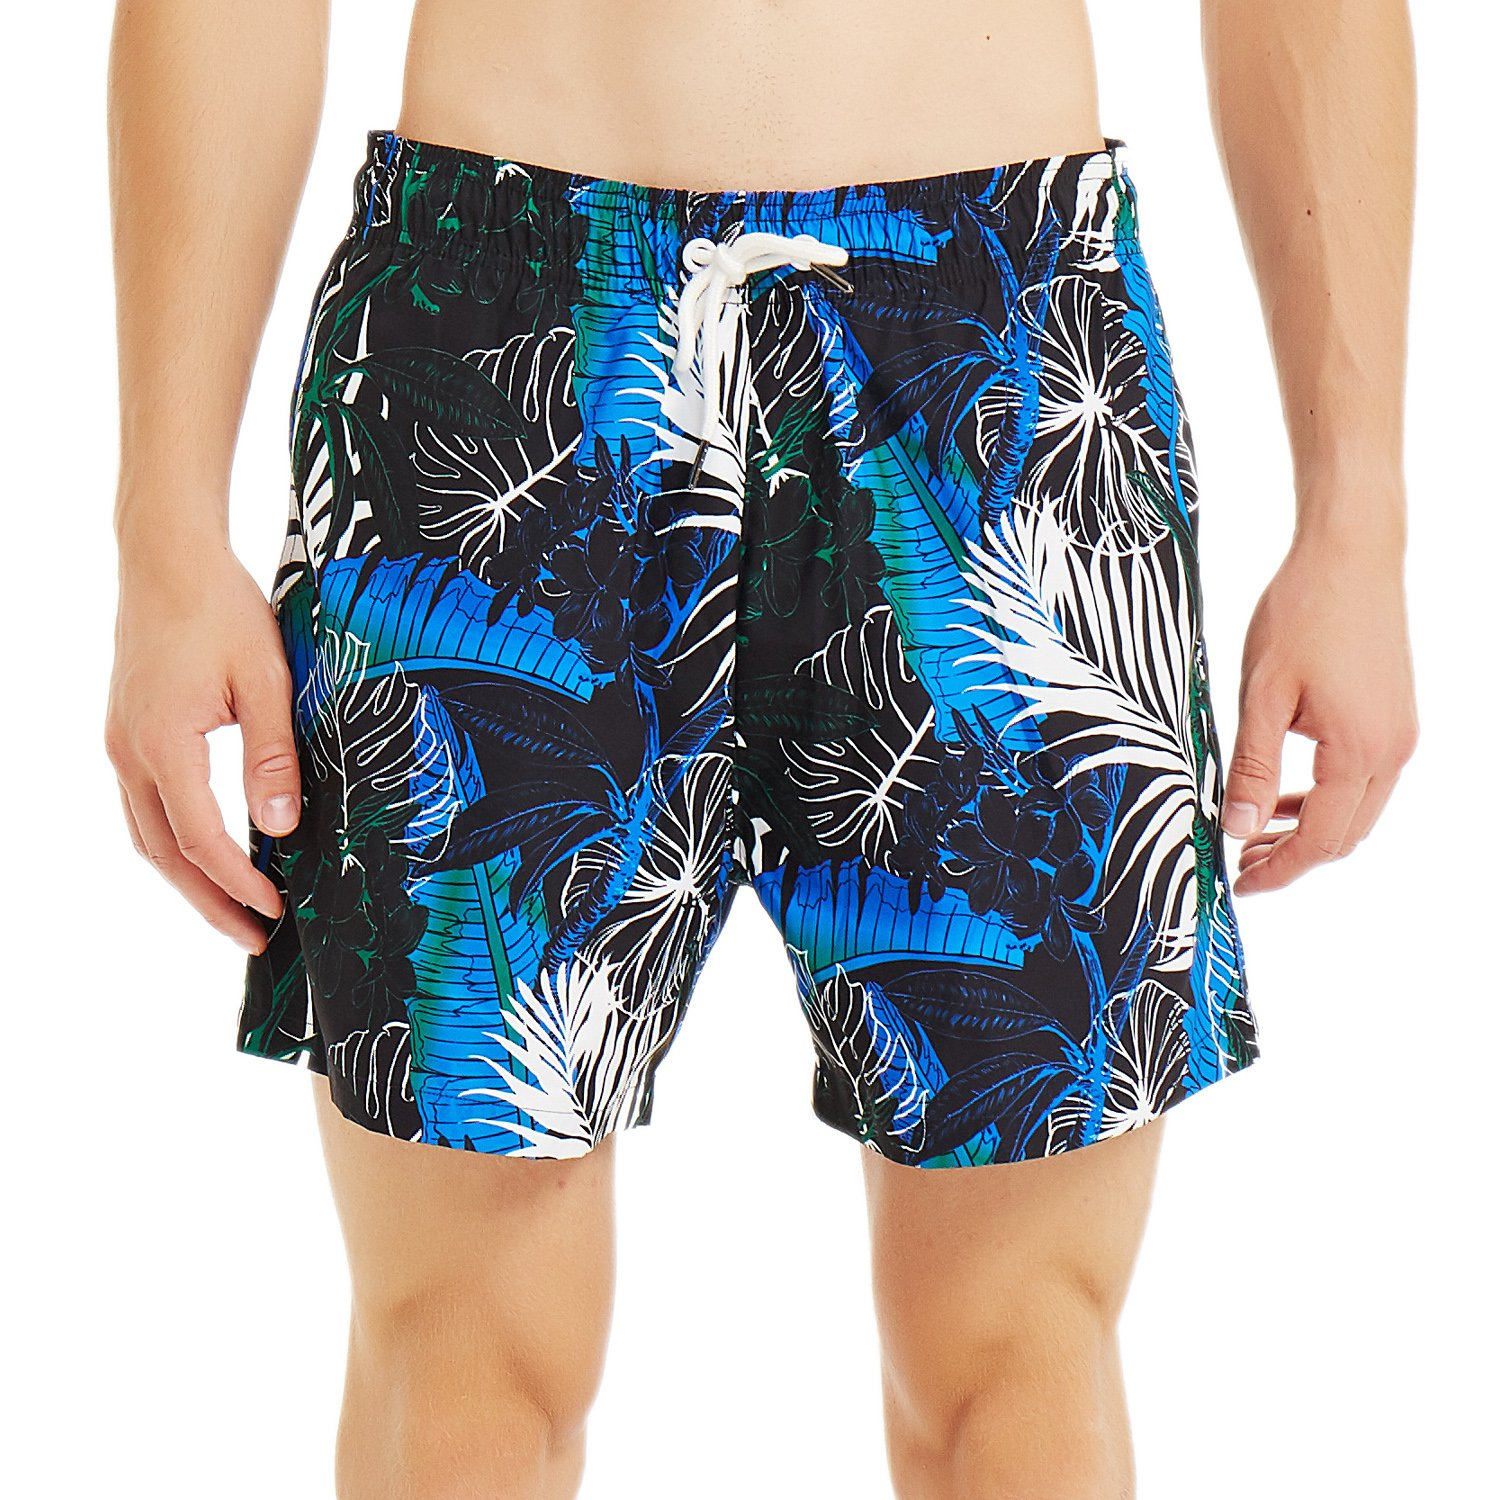 8002cd5457 ... cord,Mesh Lining. Near skin without friction and irritation .Three  useful pockets,Two side pockets and one back pocket. Men's Quick Dry Swim  Trunks ...